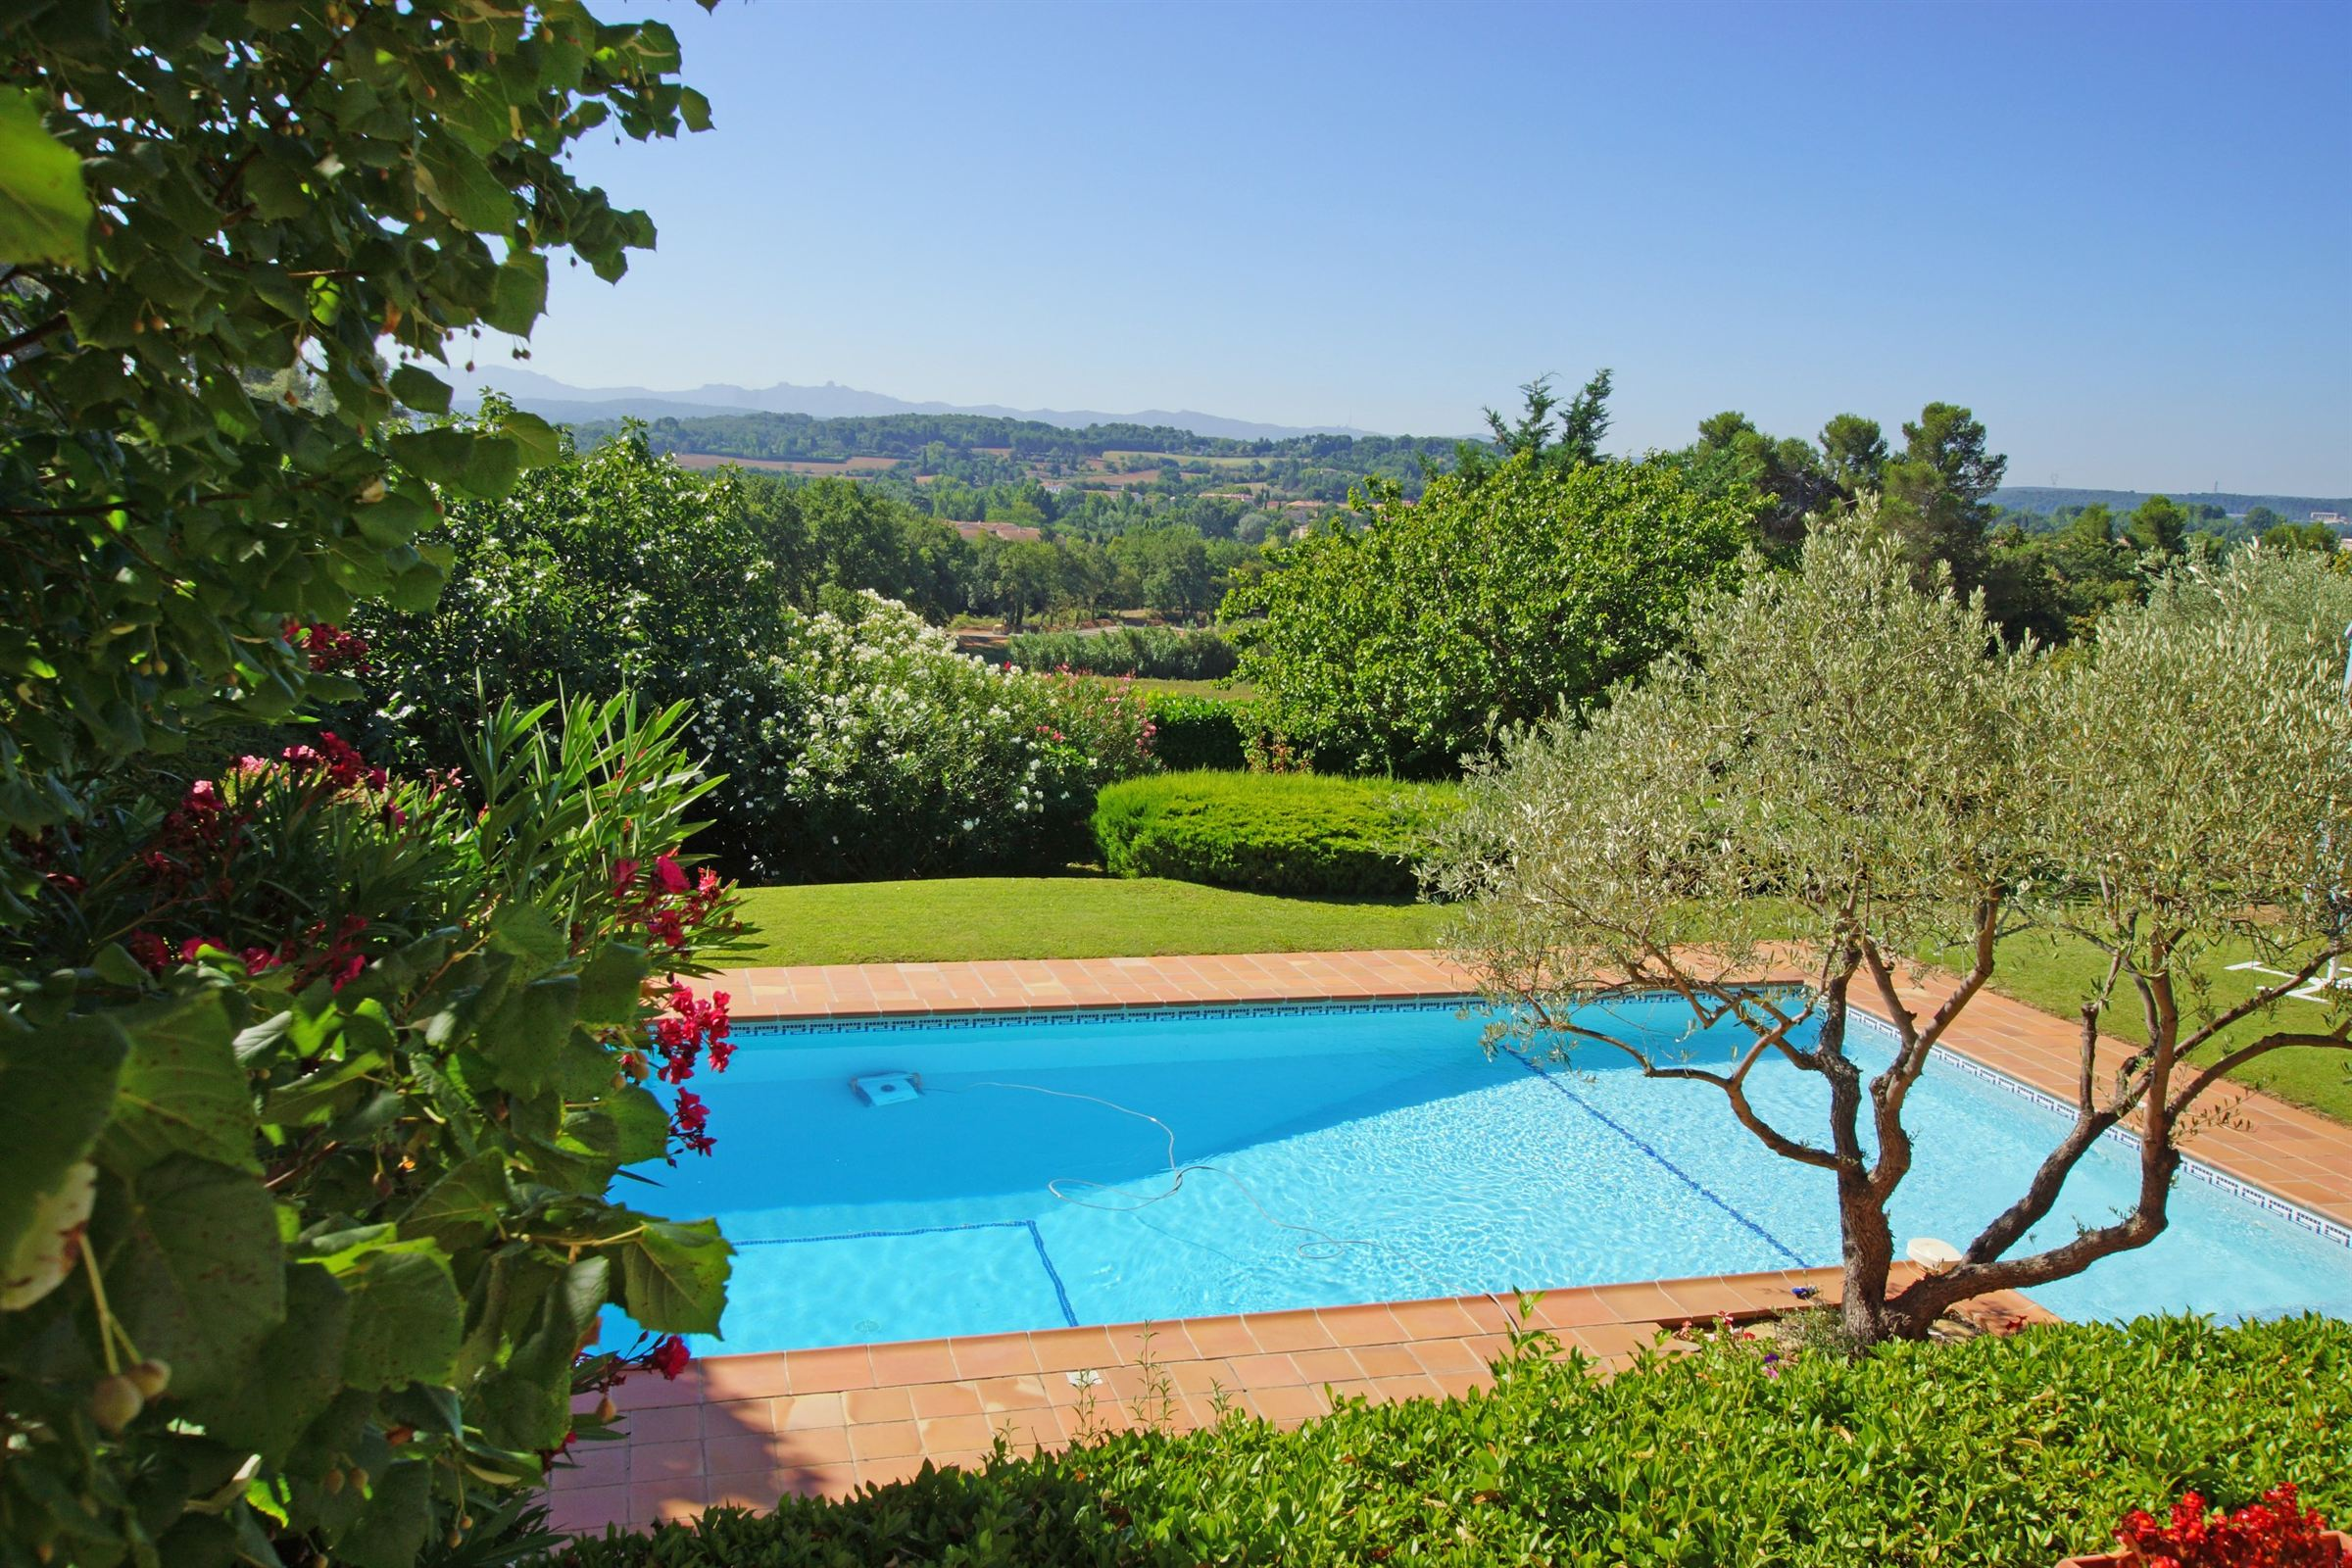 Single Family Home for Sale at House Other Provence-Alpes-Cote D'Azur, Provence-Alpes-Cote D'Azur, 13090 France